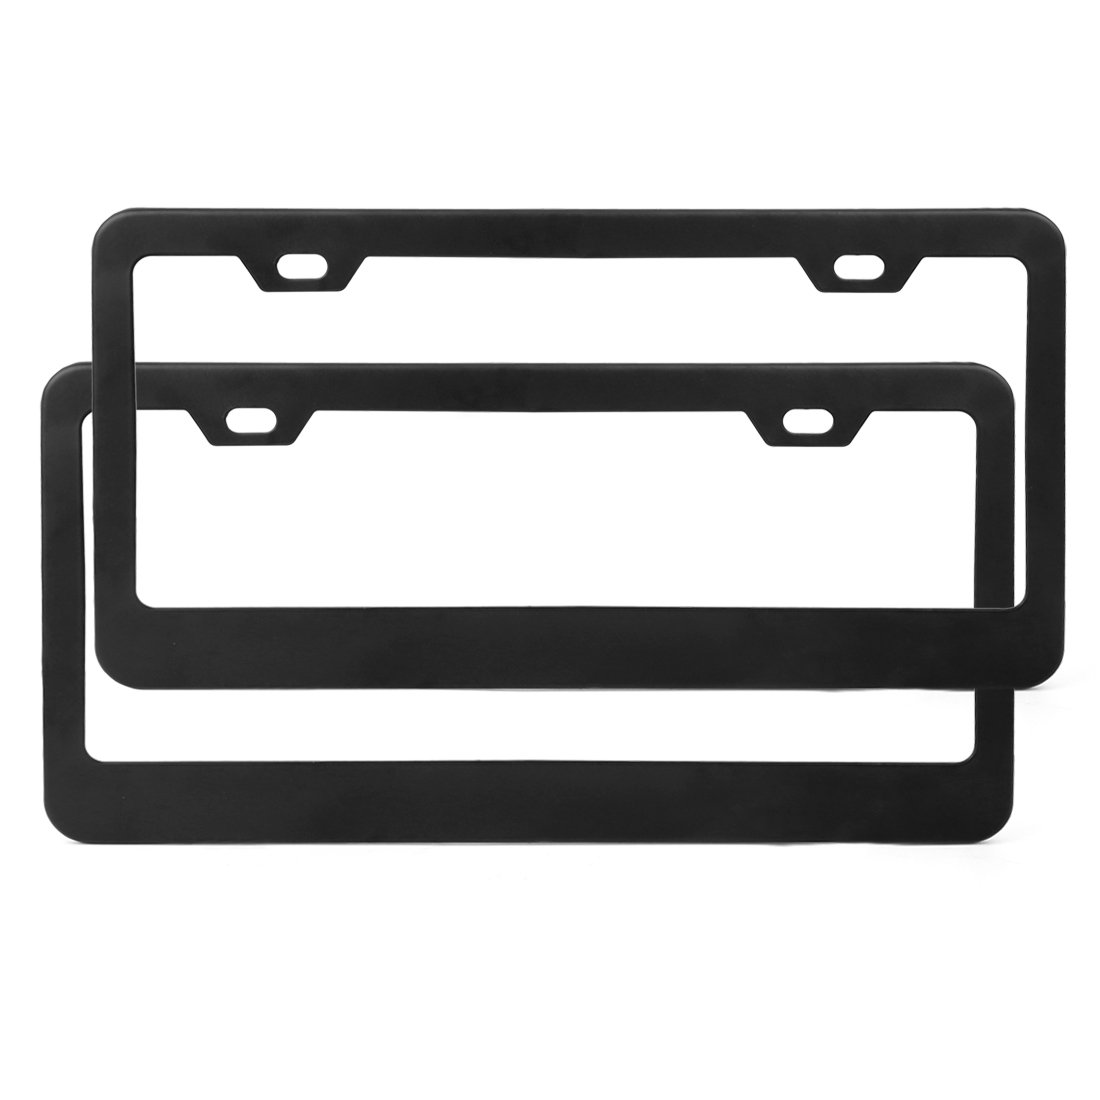 X AUTOHAUX Front License Plate Bumper Mounting Bracket for 09-14 Ford F150 Black Plasitc